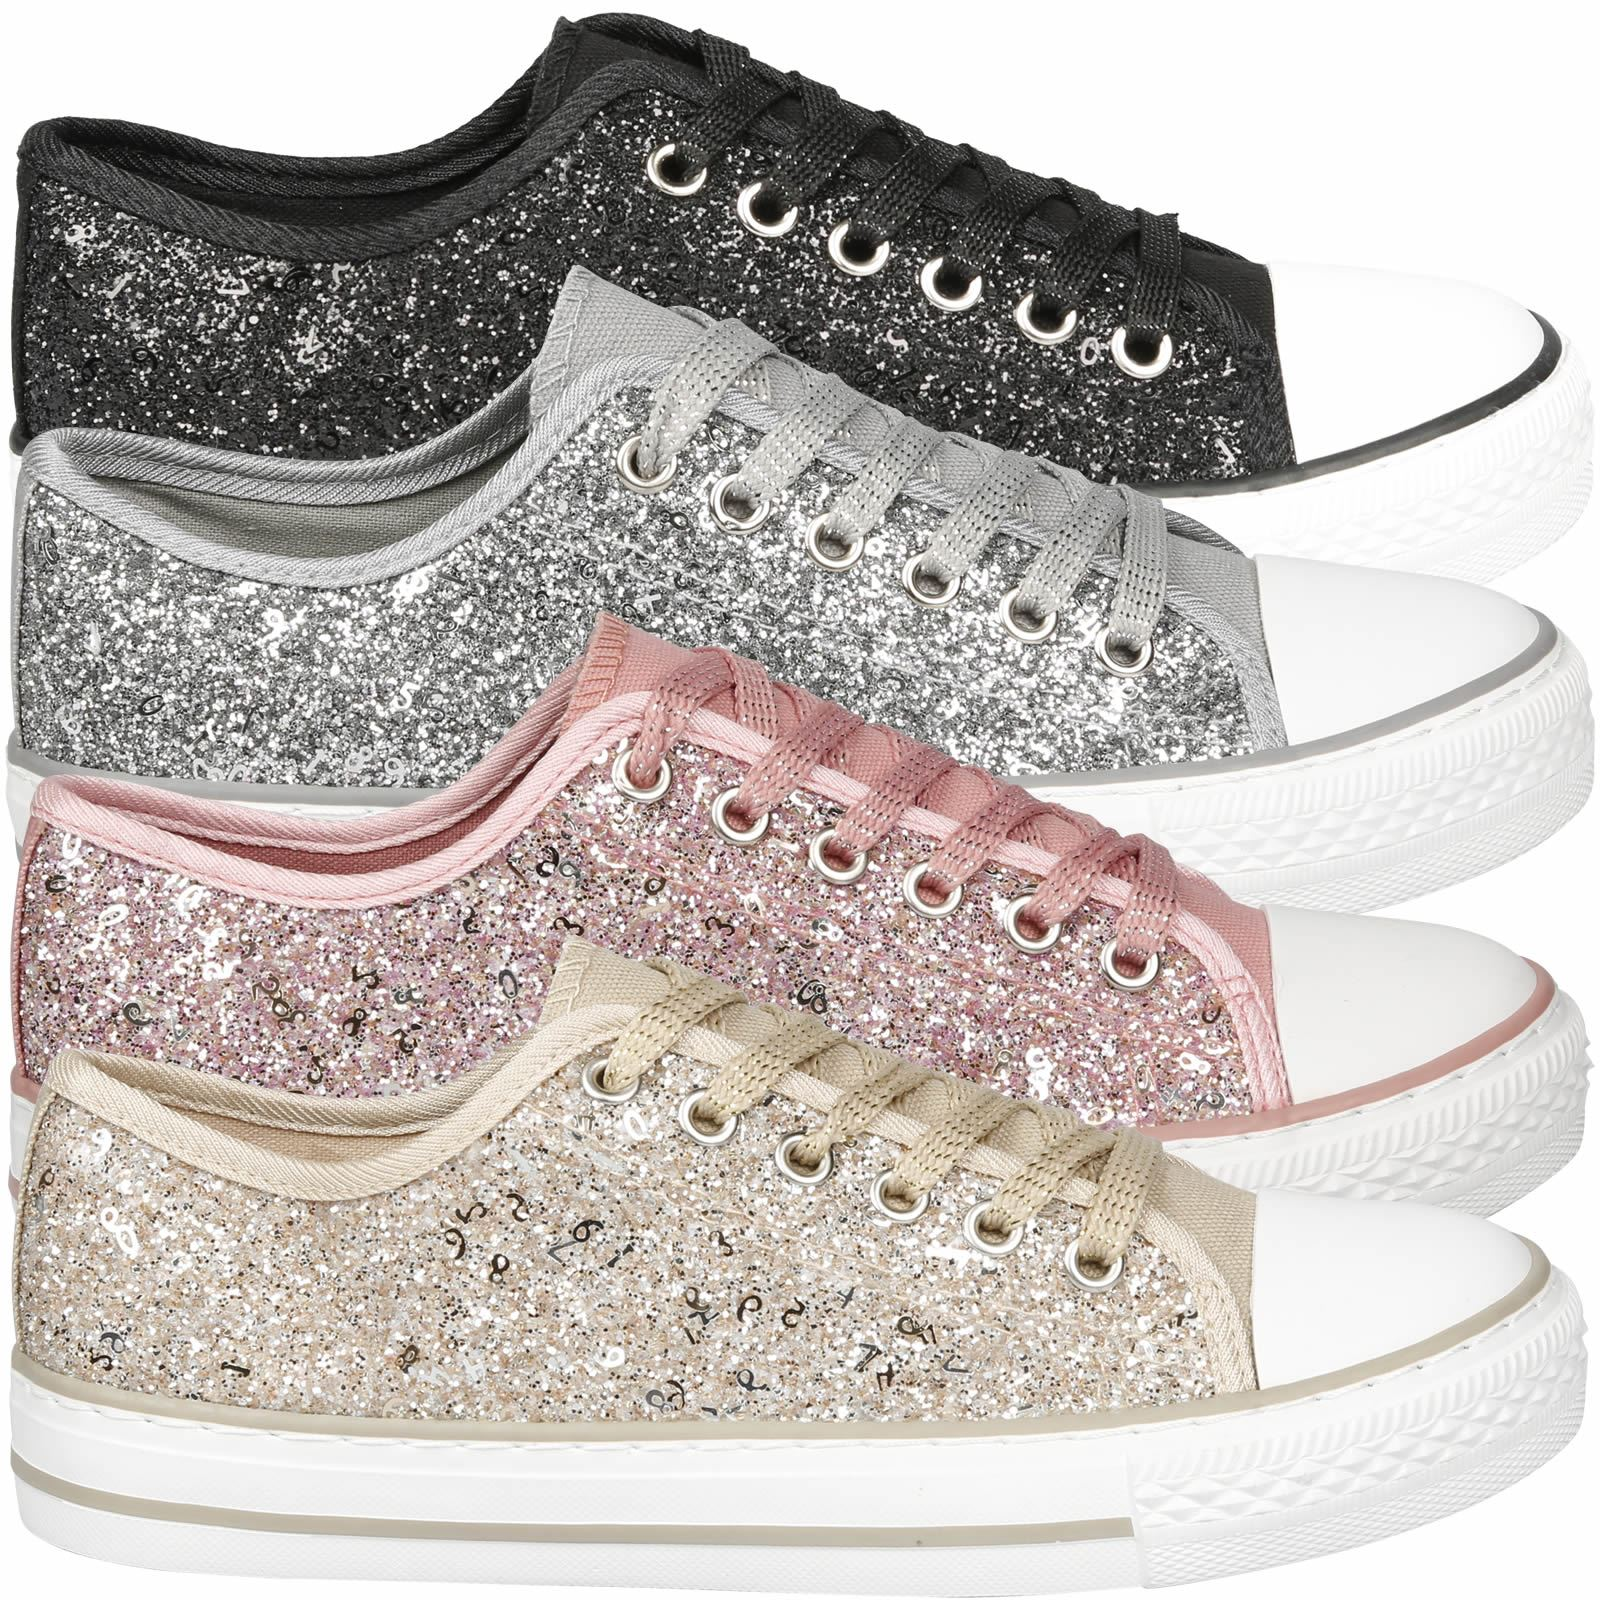 Details about Nola Womens Flat Platform Lace Up Glittery Trainer Pumps Sneakers  Ladies Shoes 5c0dacaa006